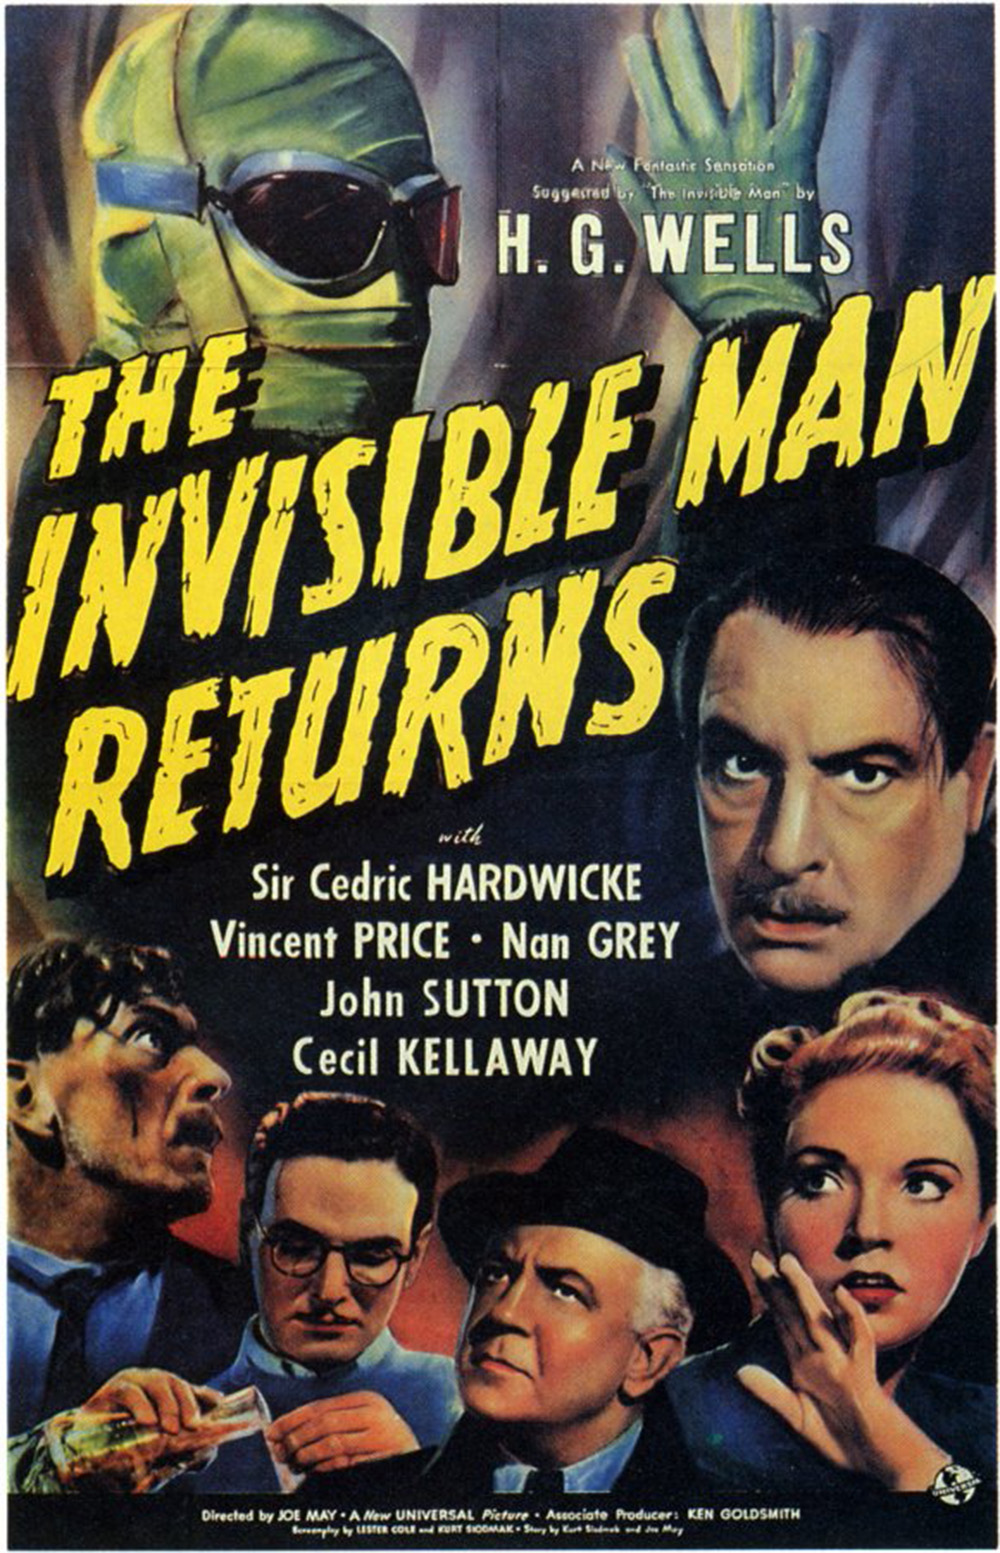 The Invisible Man Returns - 1940